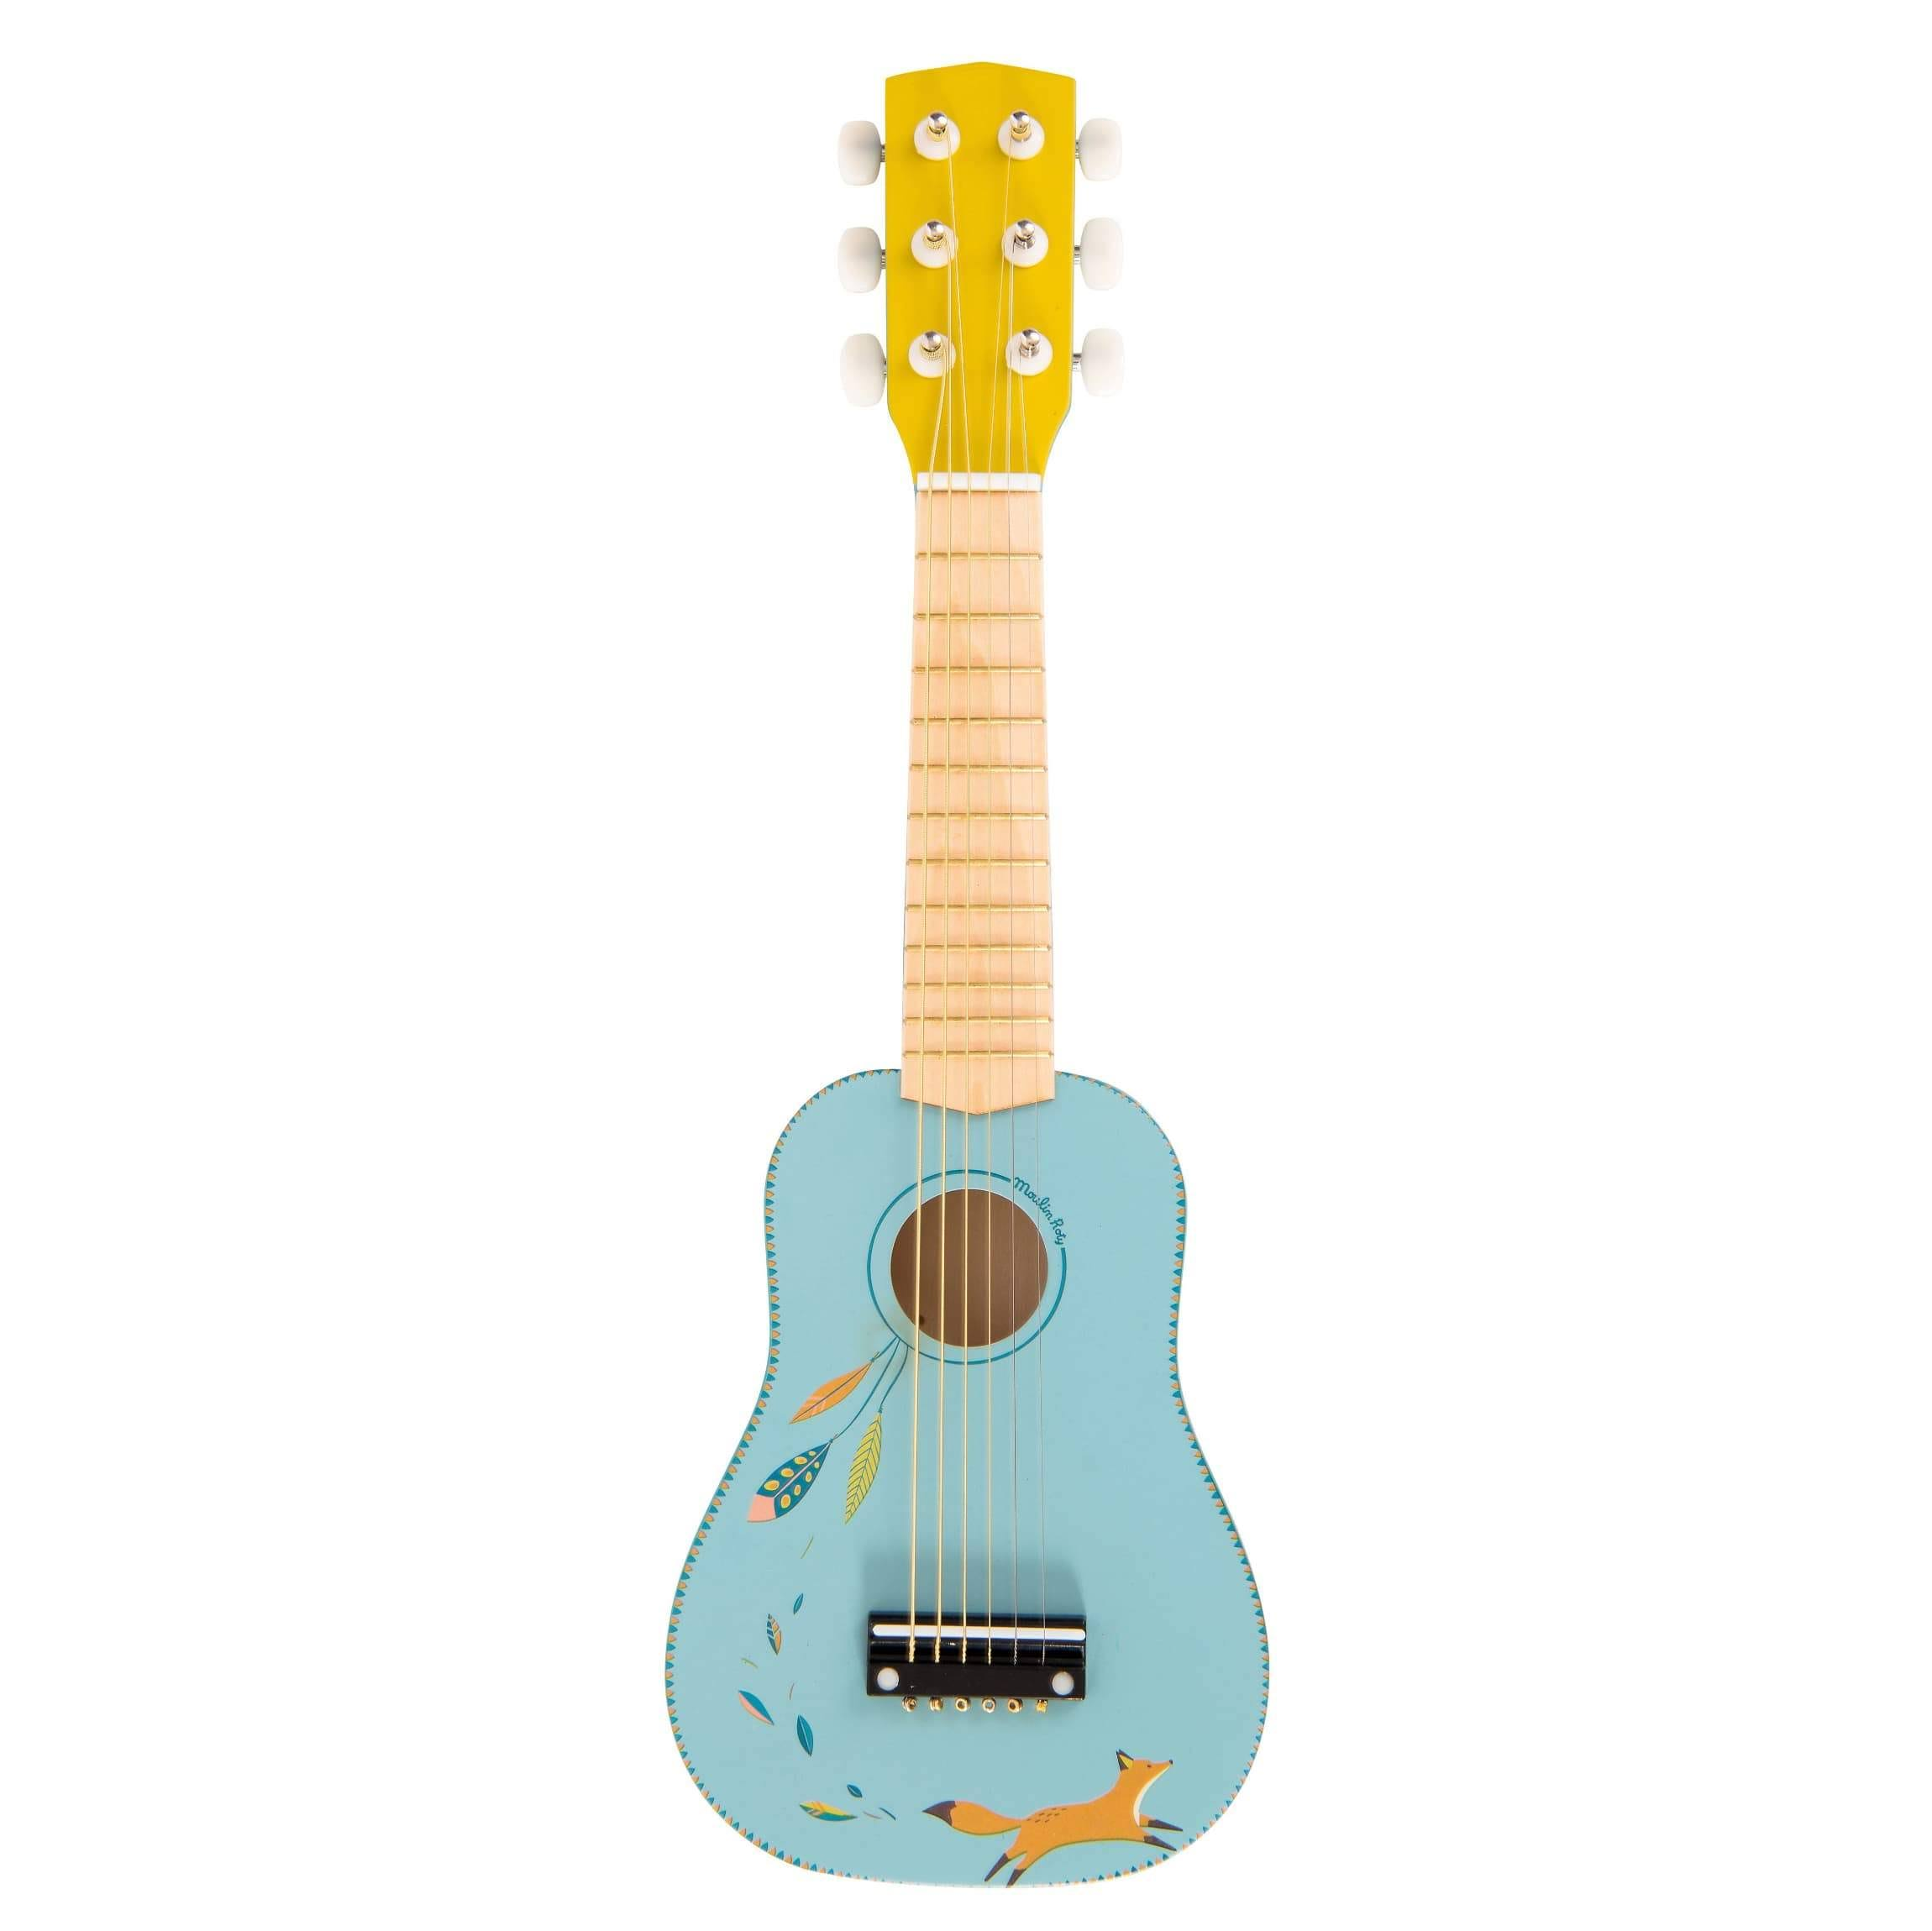 Moulin Roty Le voyage d'Olga Guitar - Wood, Blue